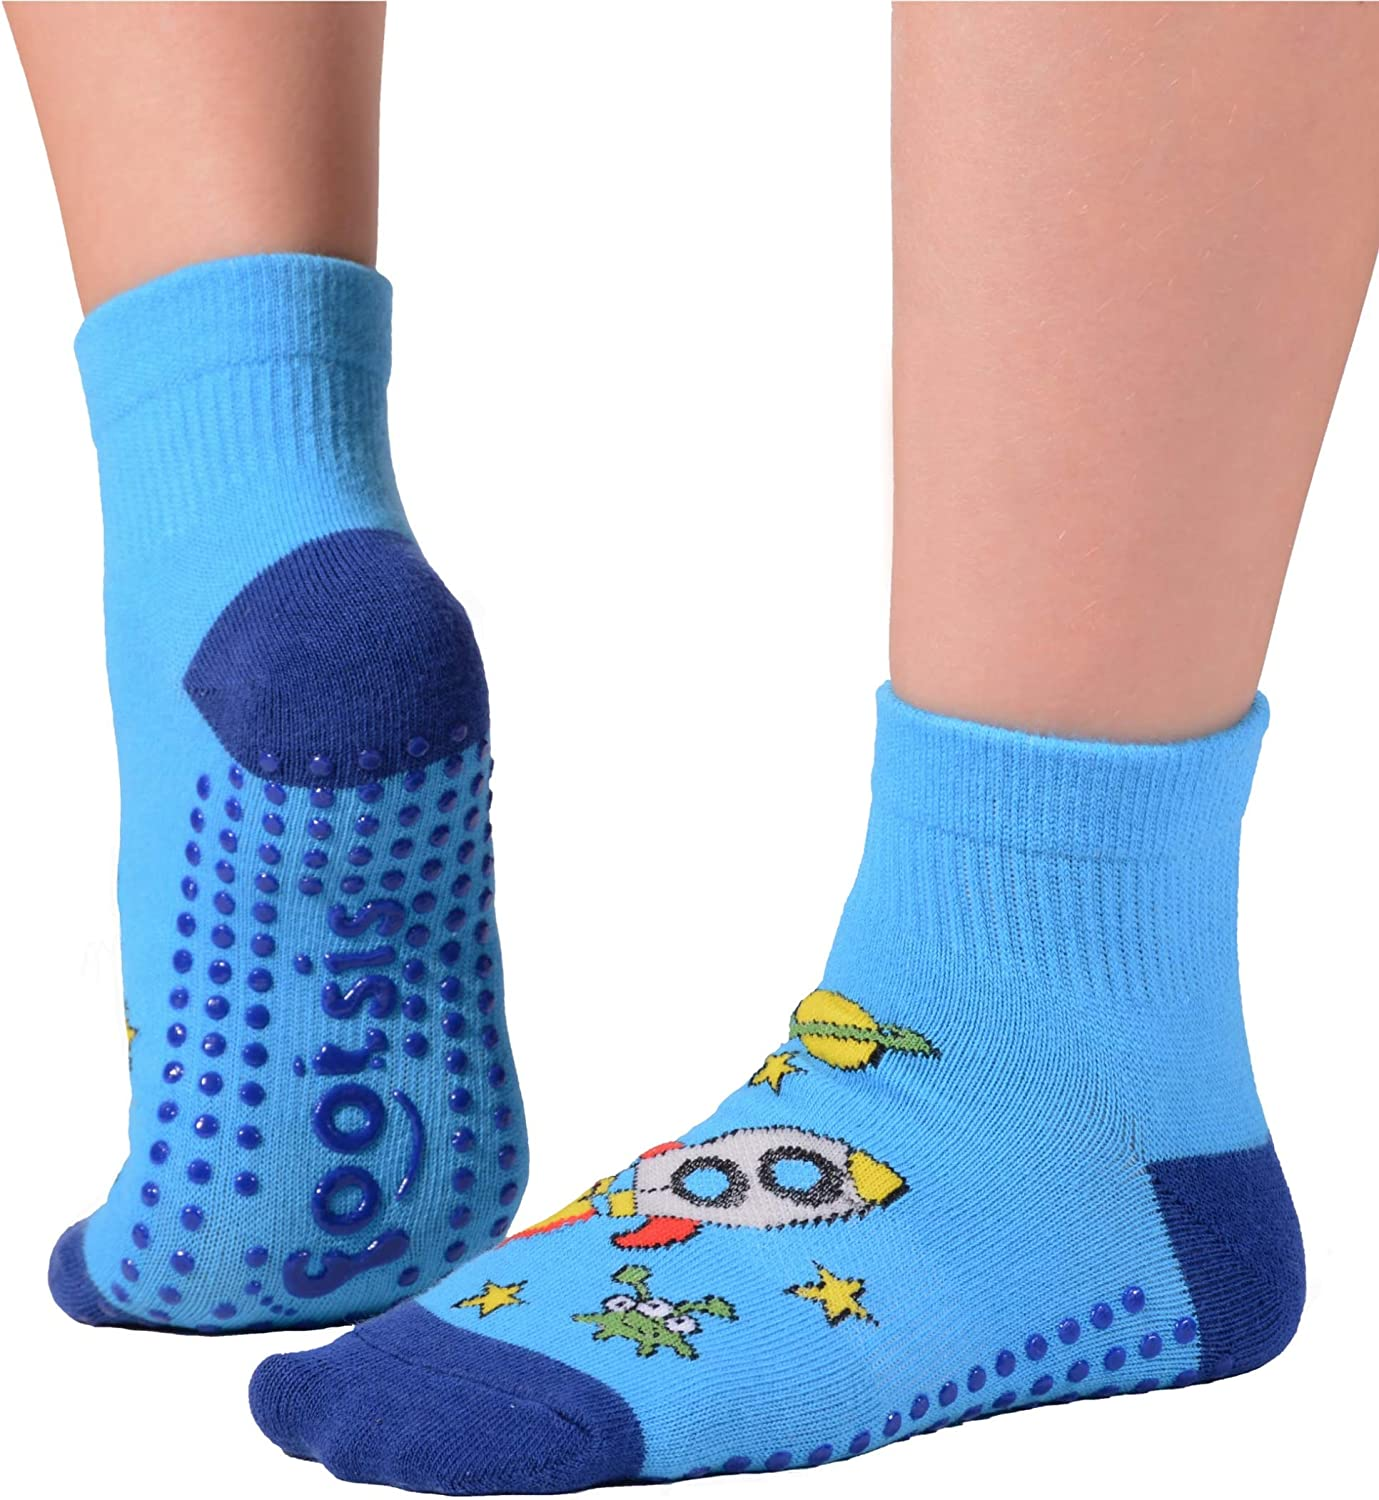 FOOTSIS Non Slip Grip Socks for Yoga, Pilates, Barre, Home, Hospital ,Mommy and Me classes 'Rocket'